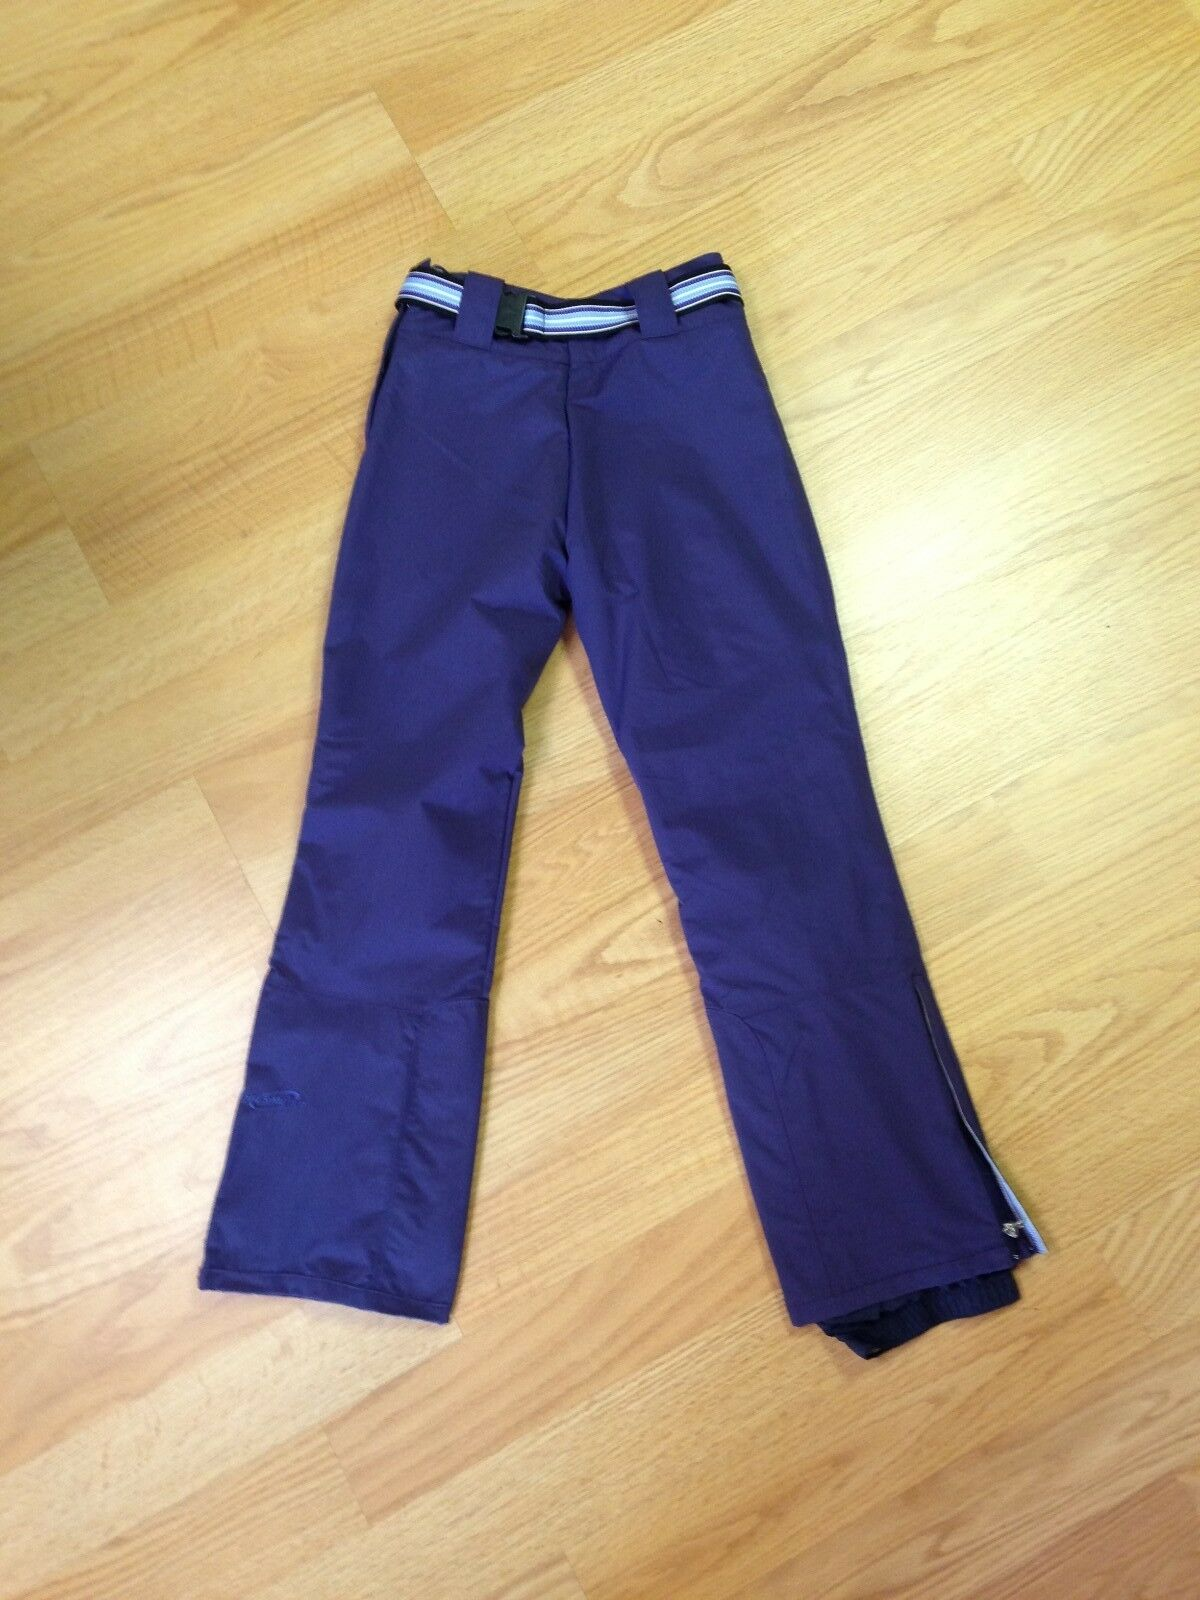 Obermeyer  Women's Anarchy Pant Sz 6,Skiing,Snowboarding, Winter Apparel  counter genuine